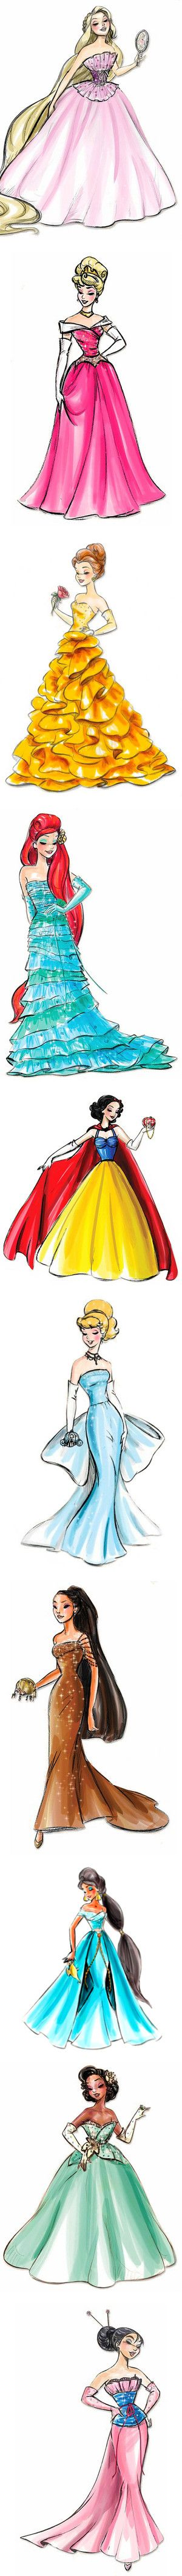 """Disney Princess Prom"" by keyaluvsfrank on Polyvore Prettier than the real dresses if I don't say so myself."